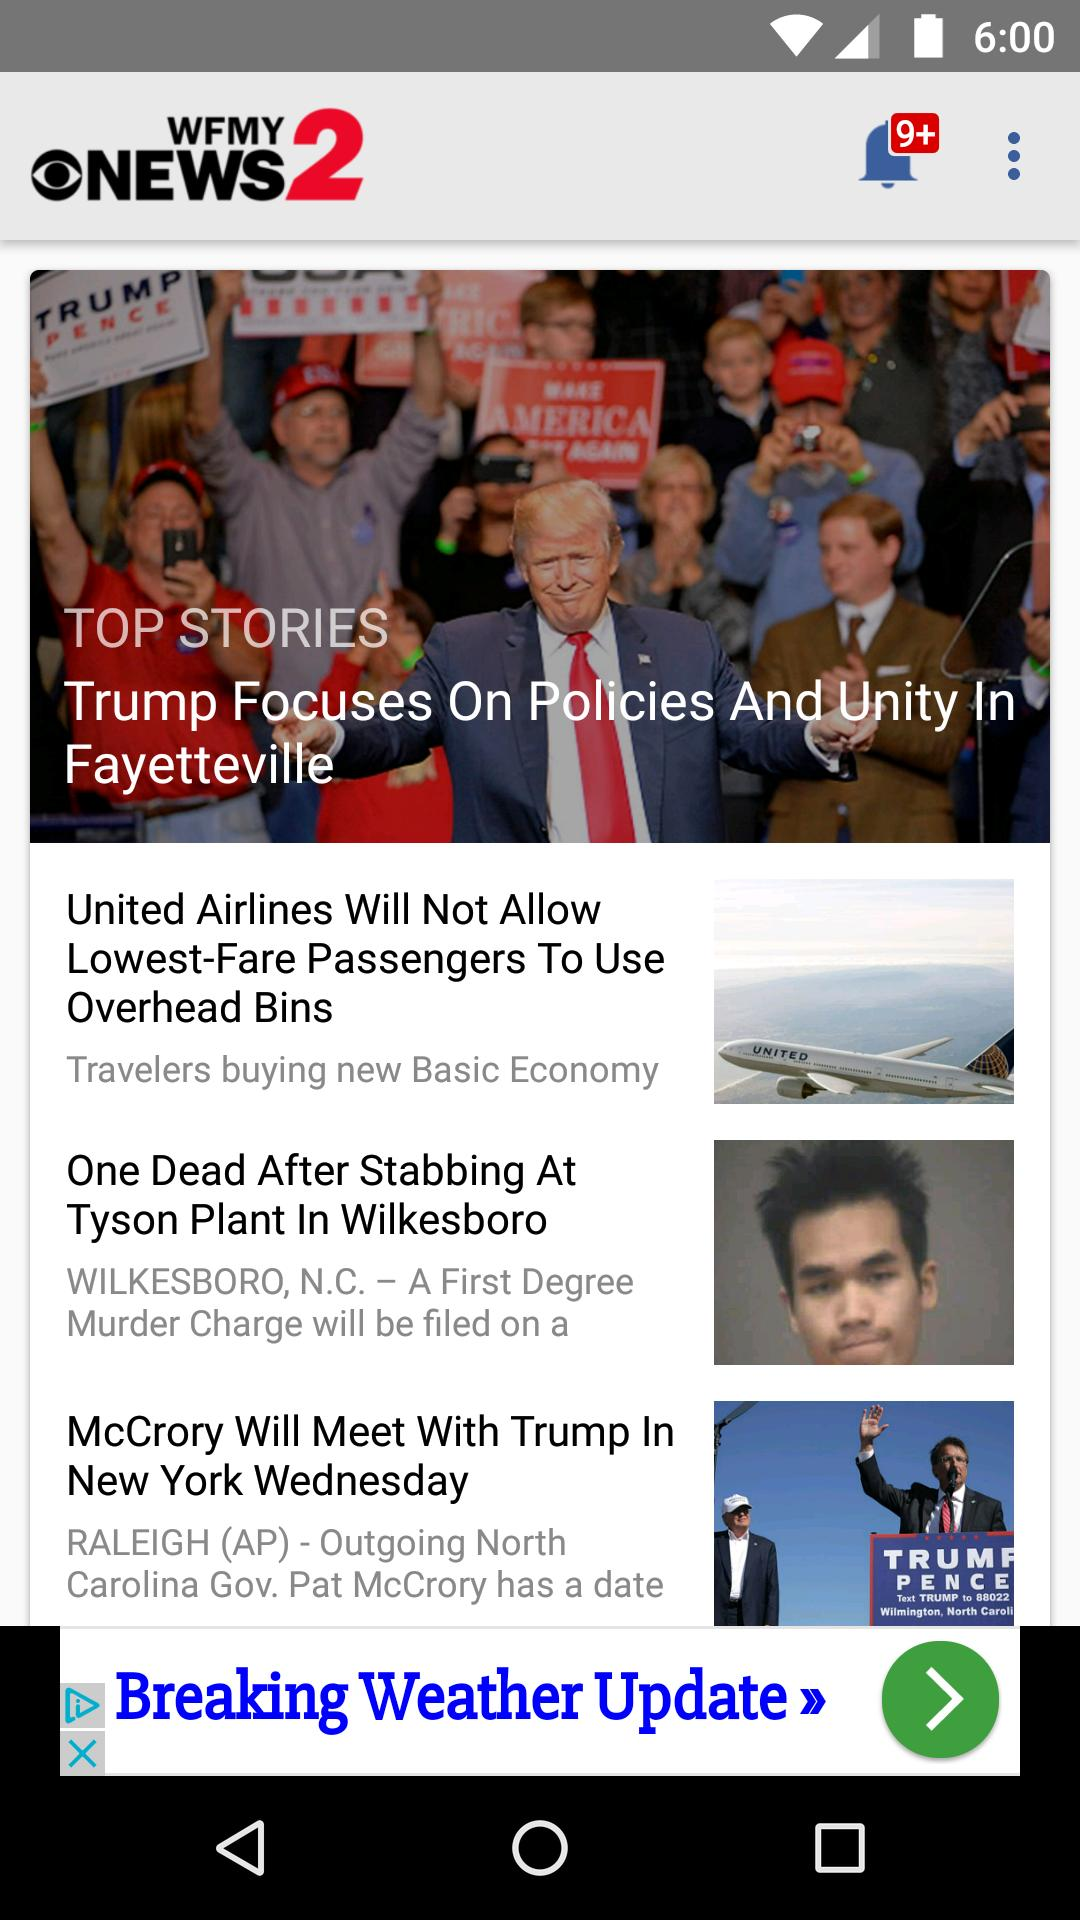 WFMY News 2 for Android - APK Download